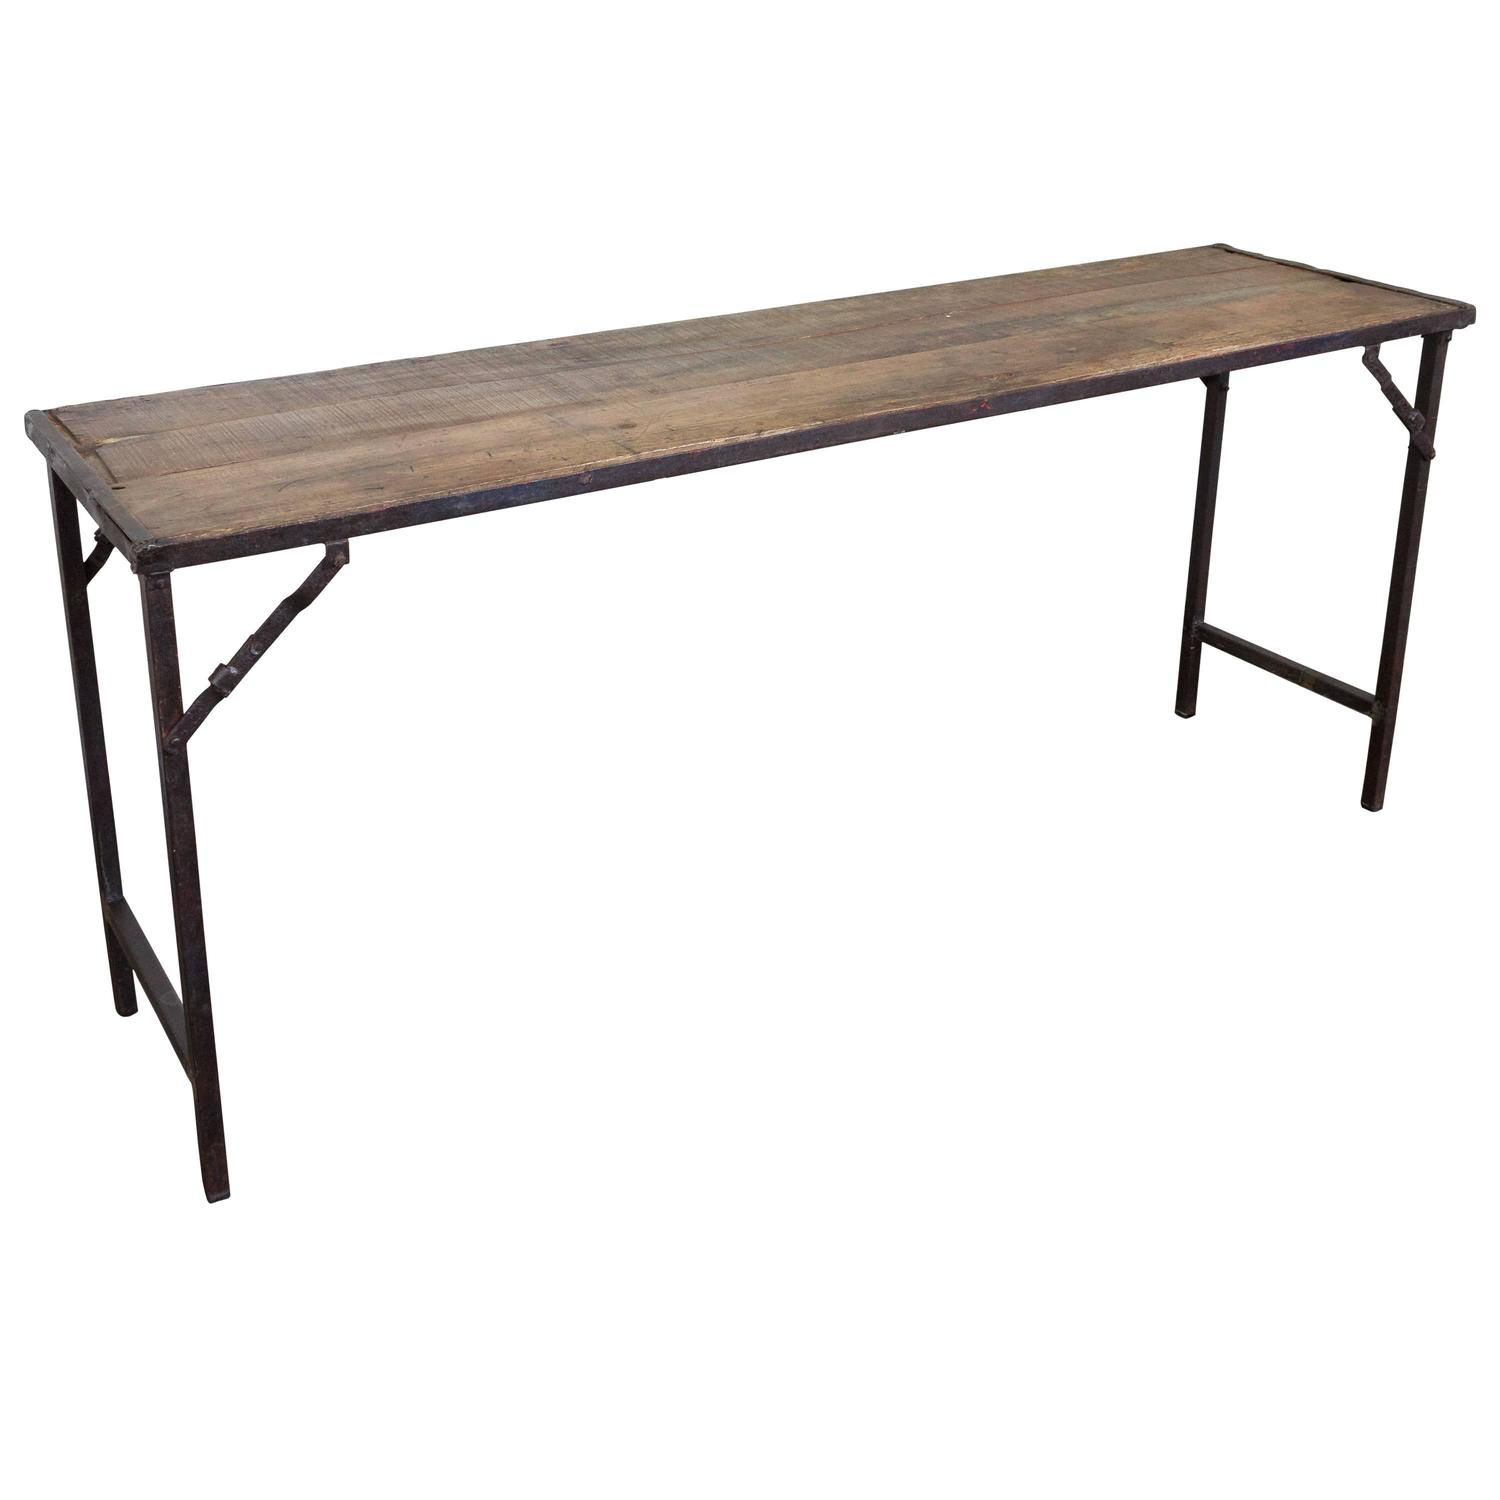 1920s French Industrial Style Folding Console At 1stdibs